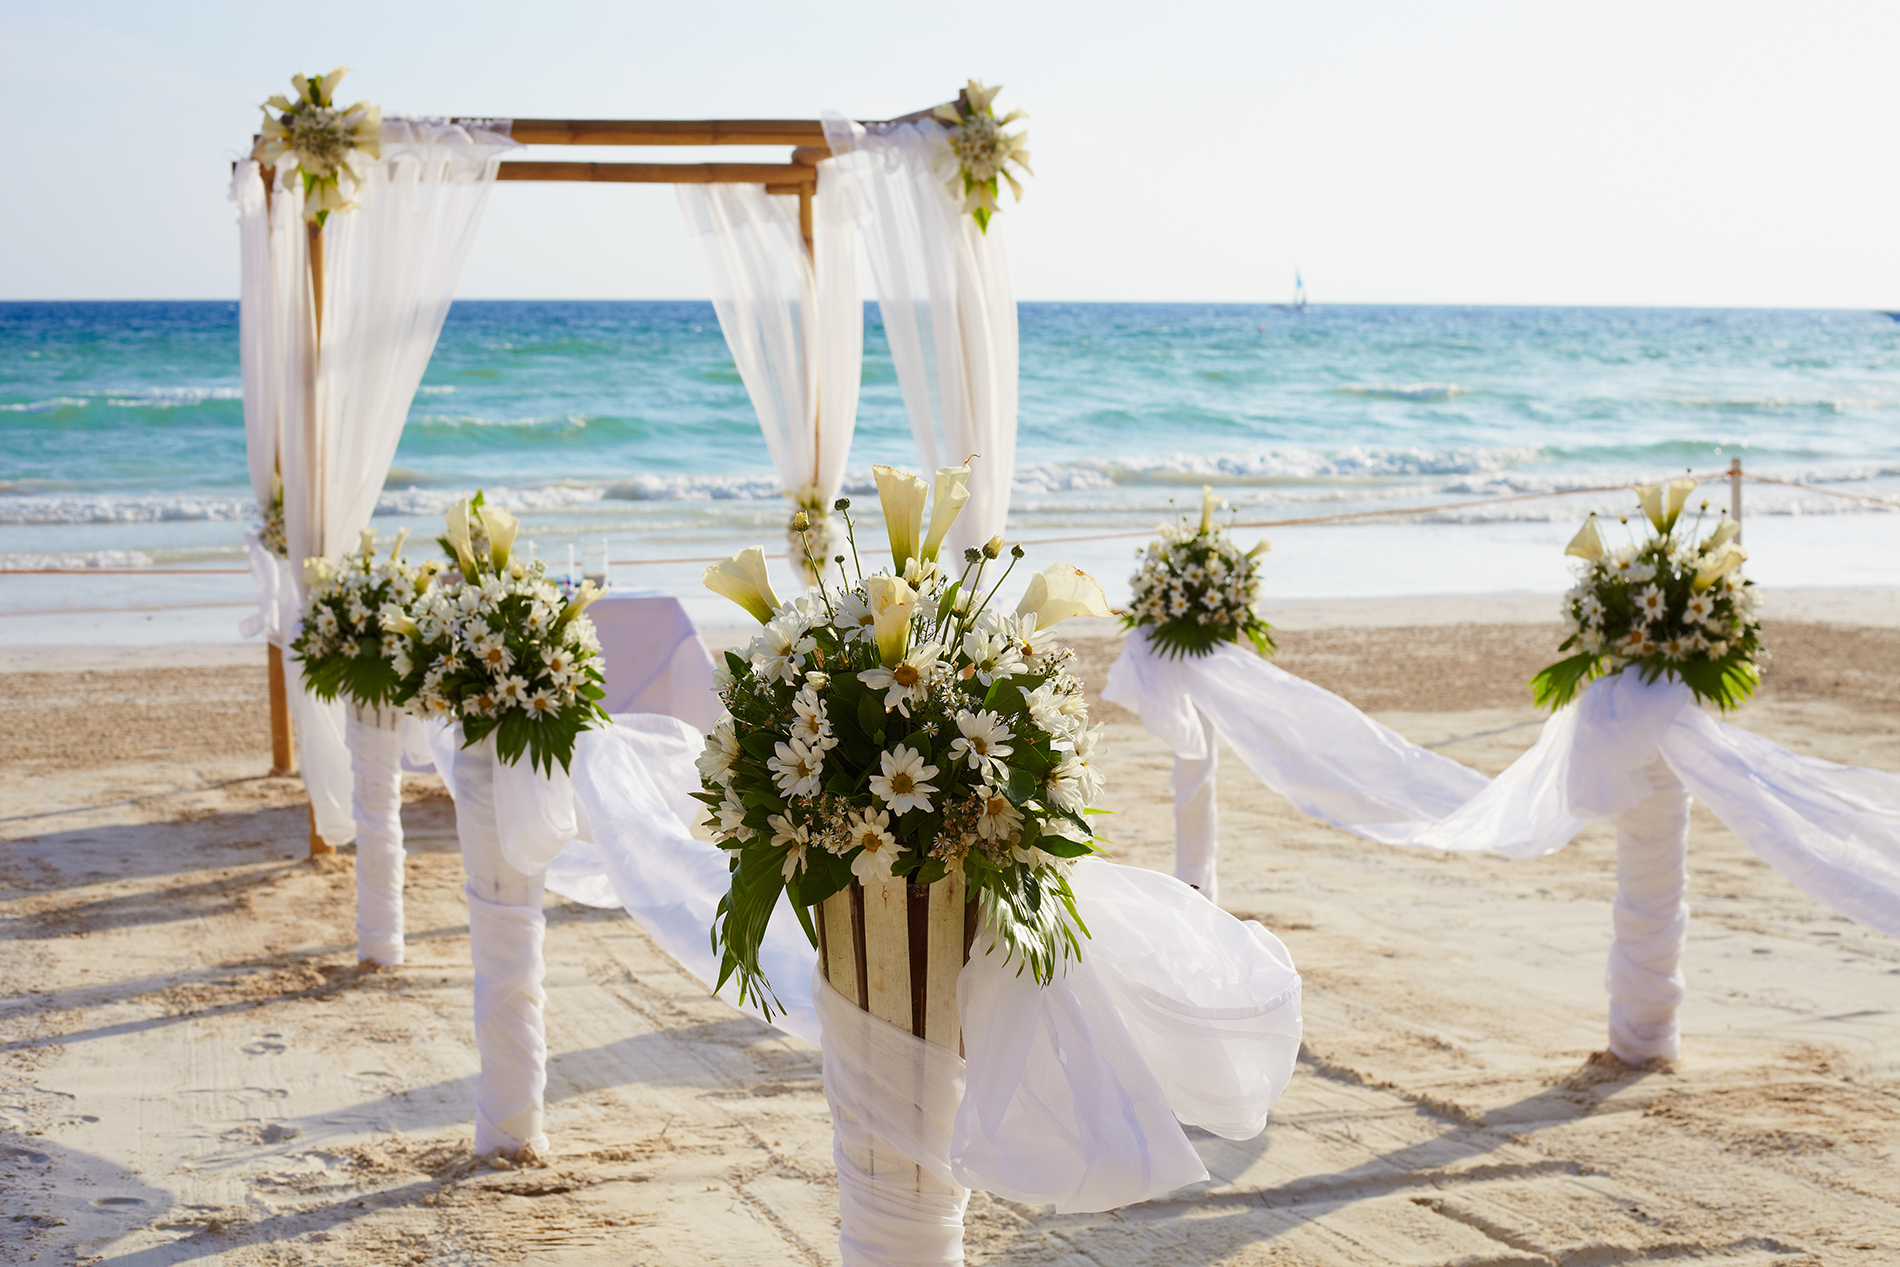 Beach wedding atmosphere layout 52828